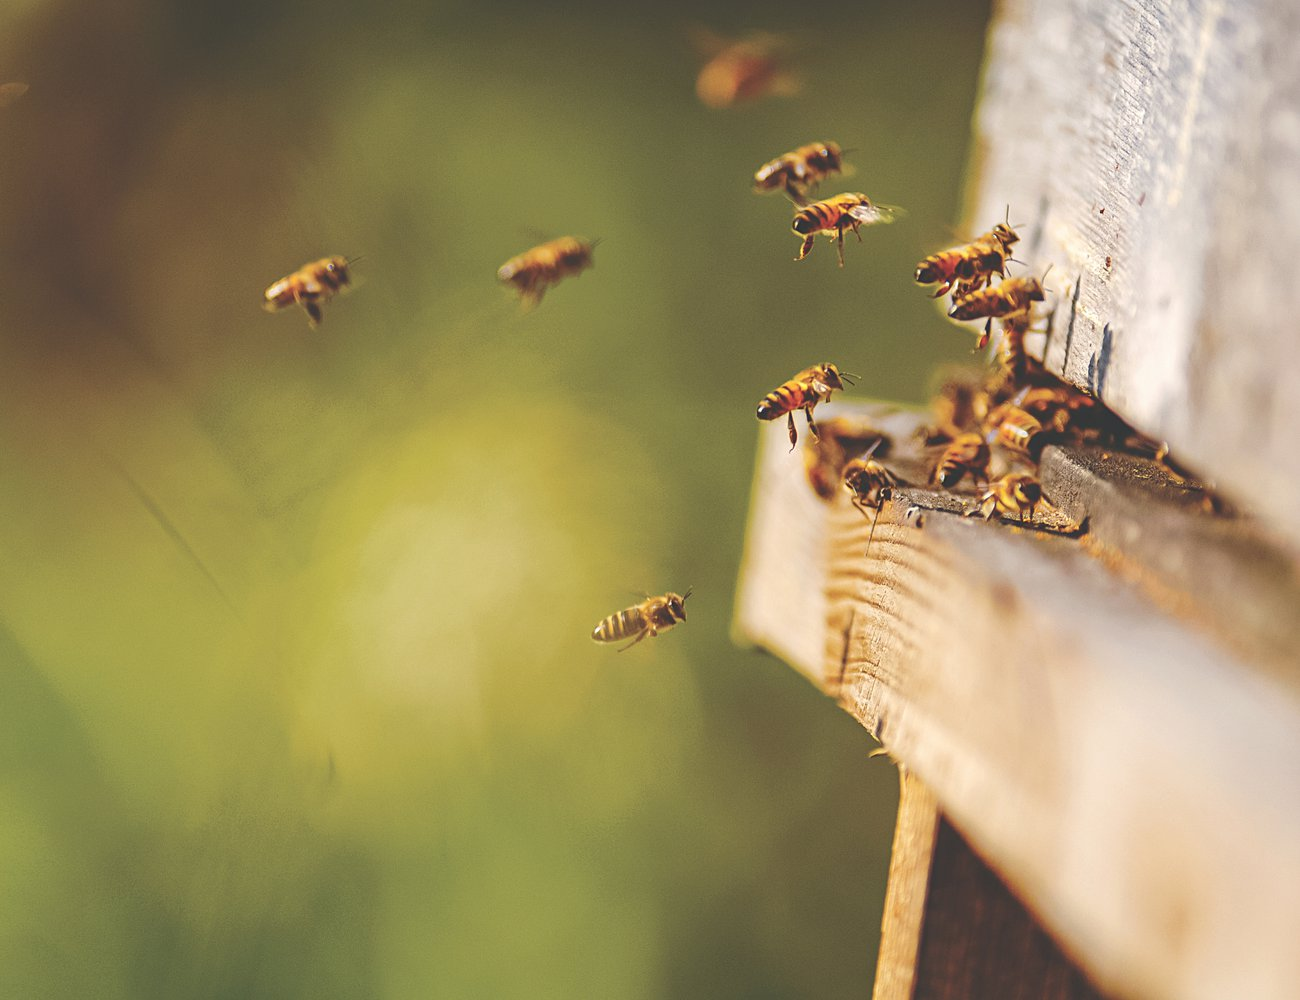 Hall Hunter uses sustainable farming practices such as wild bee pollination